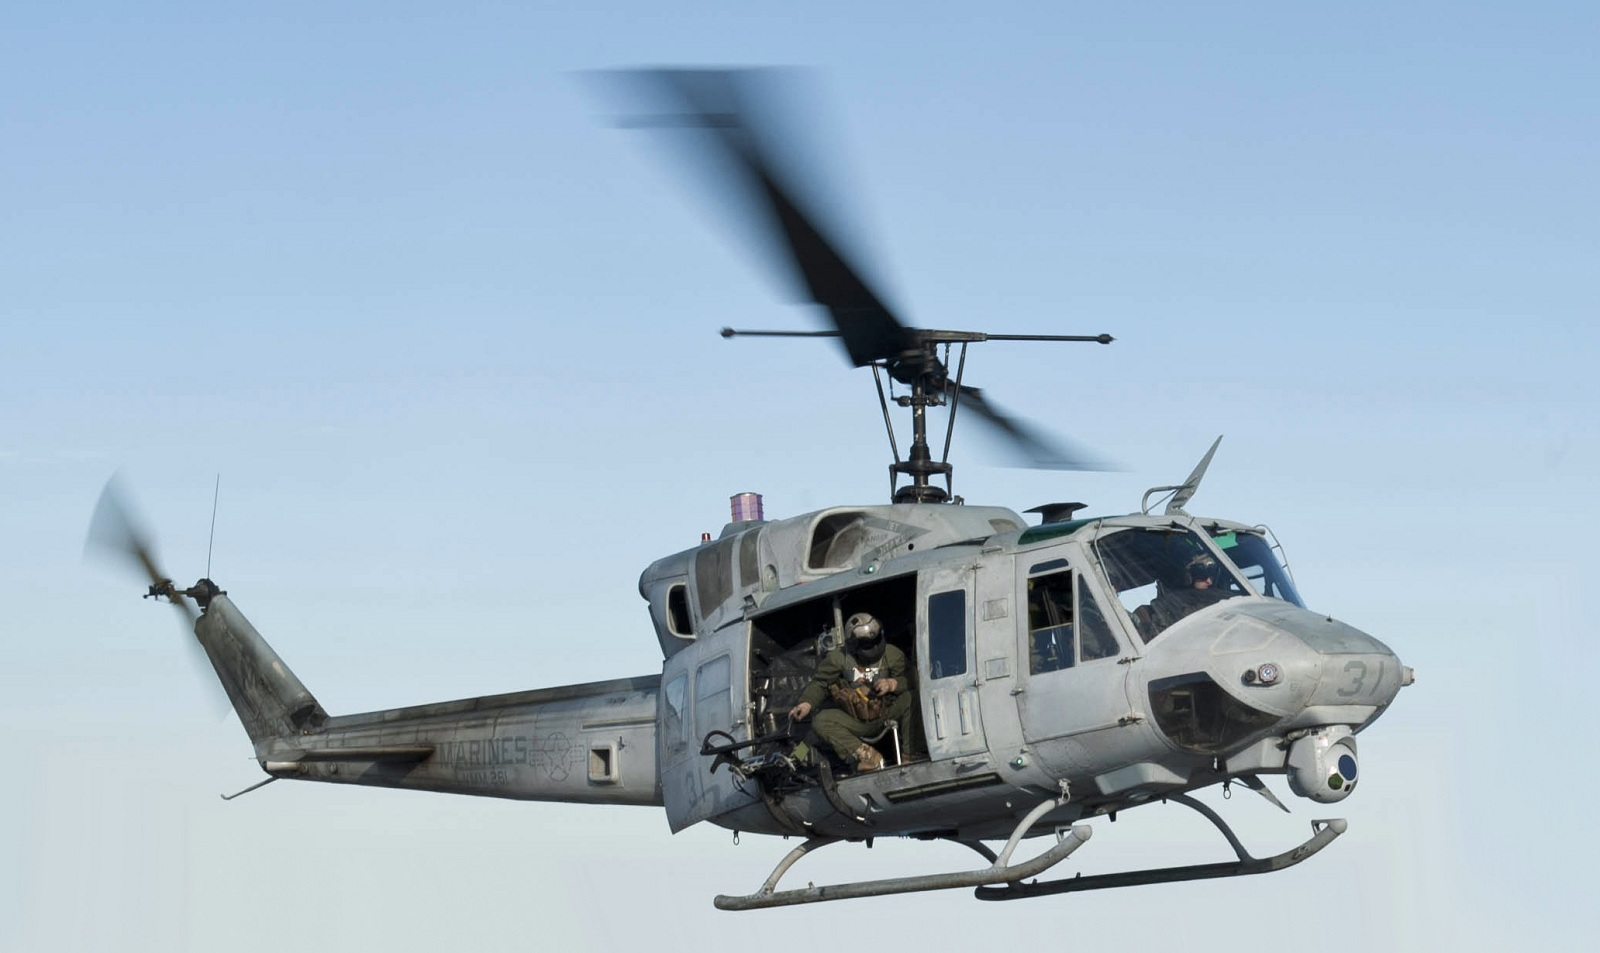 Huey Helicopter For Sale >> Naval Open Source INTelligence: UH-1N 'Huey' retired from USMC service